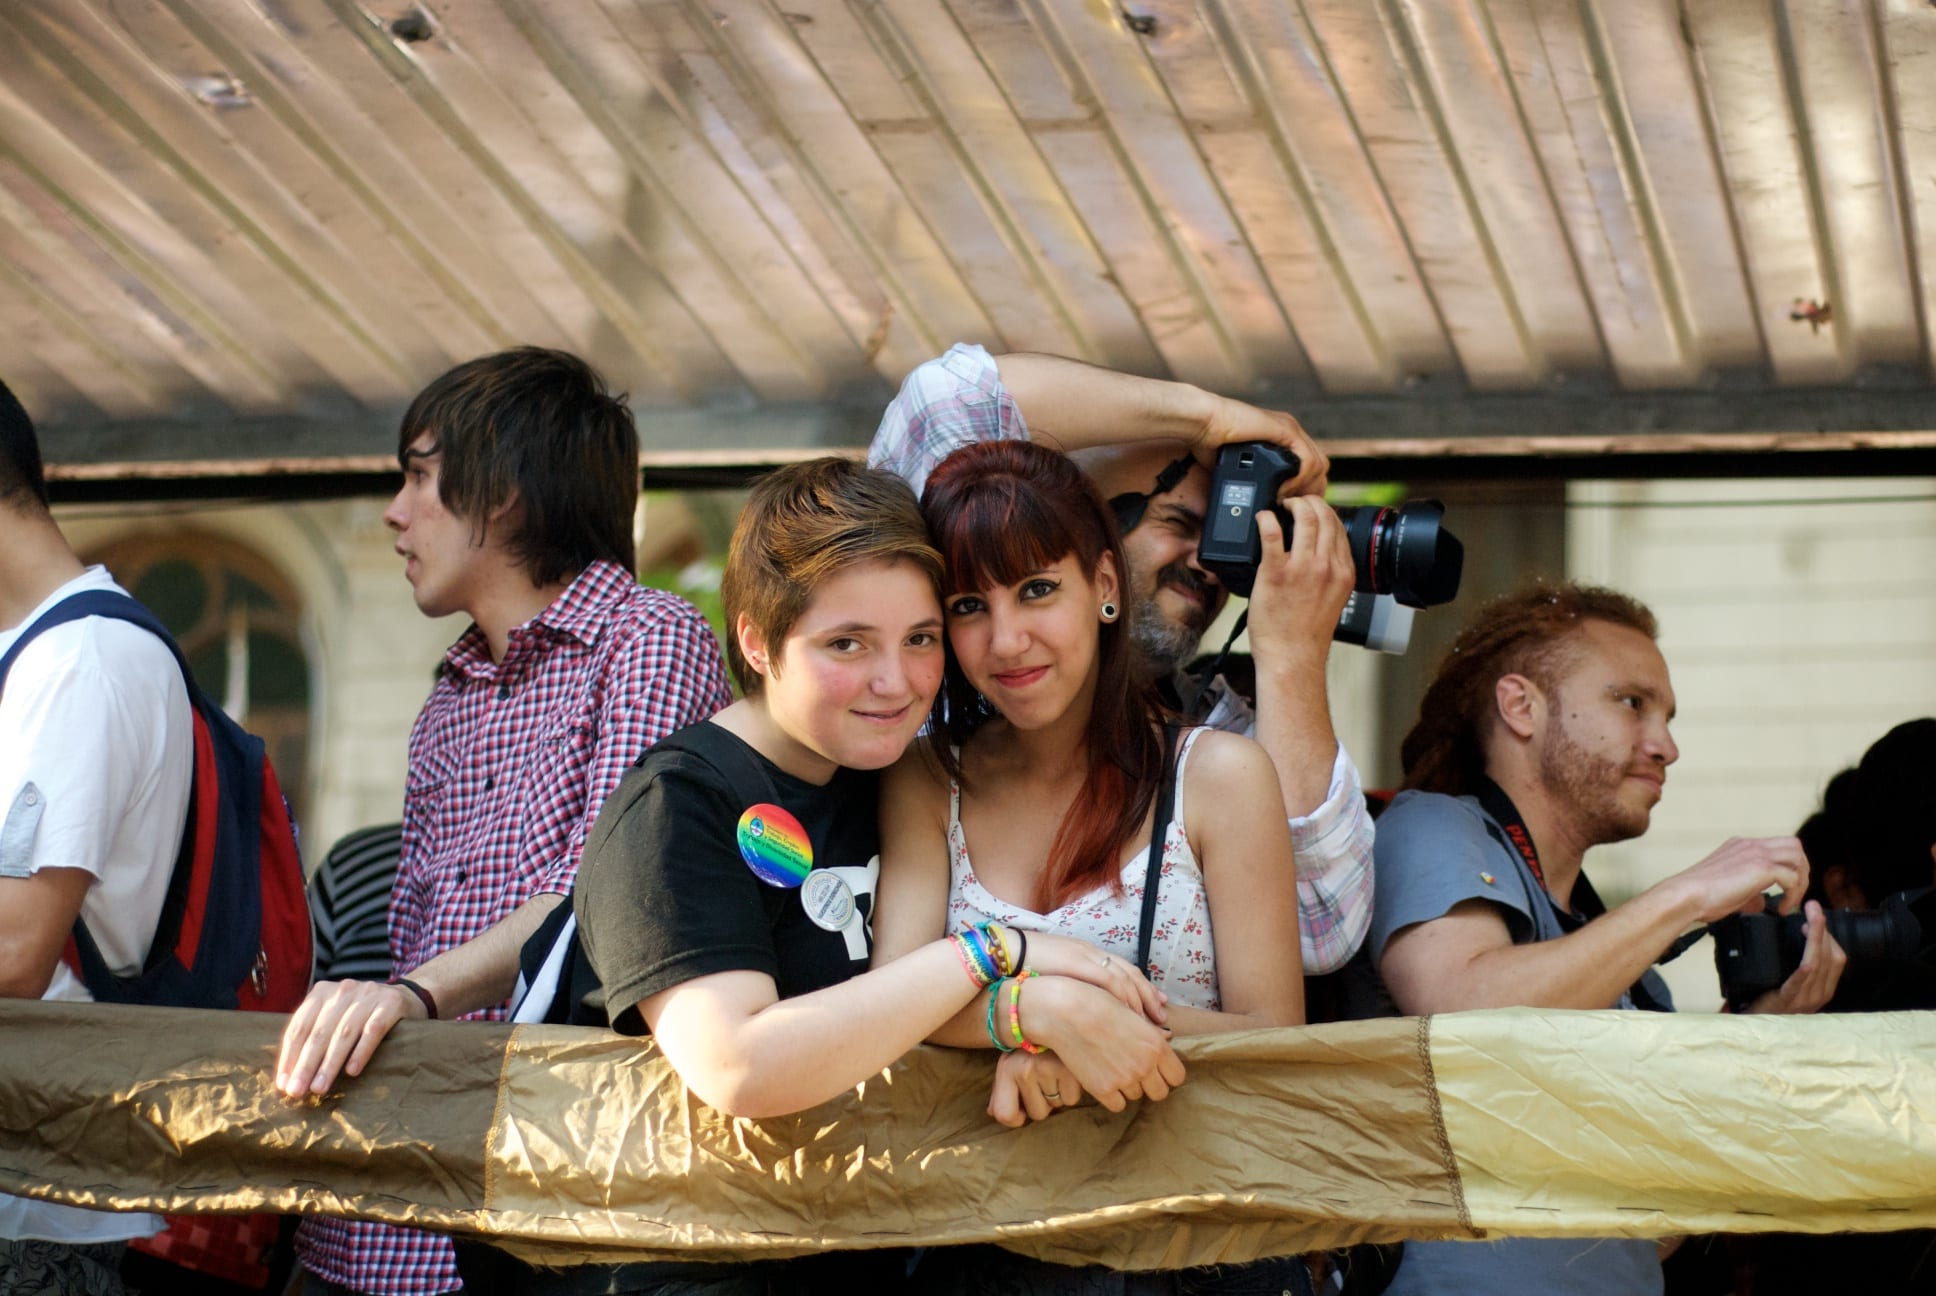 A young lesbian couple © | blmurch/Wikipedia CC